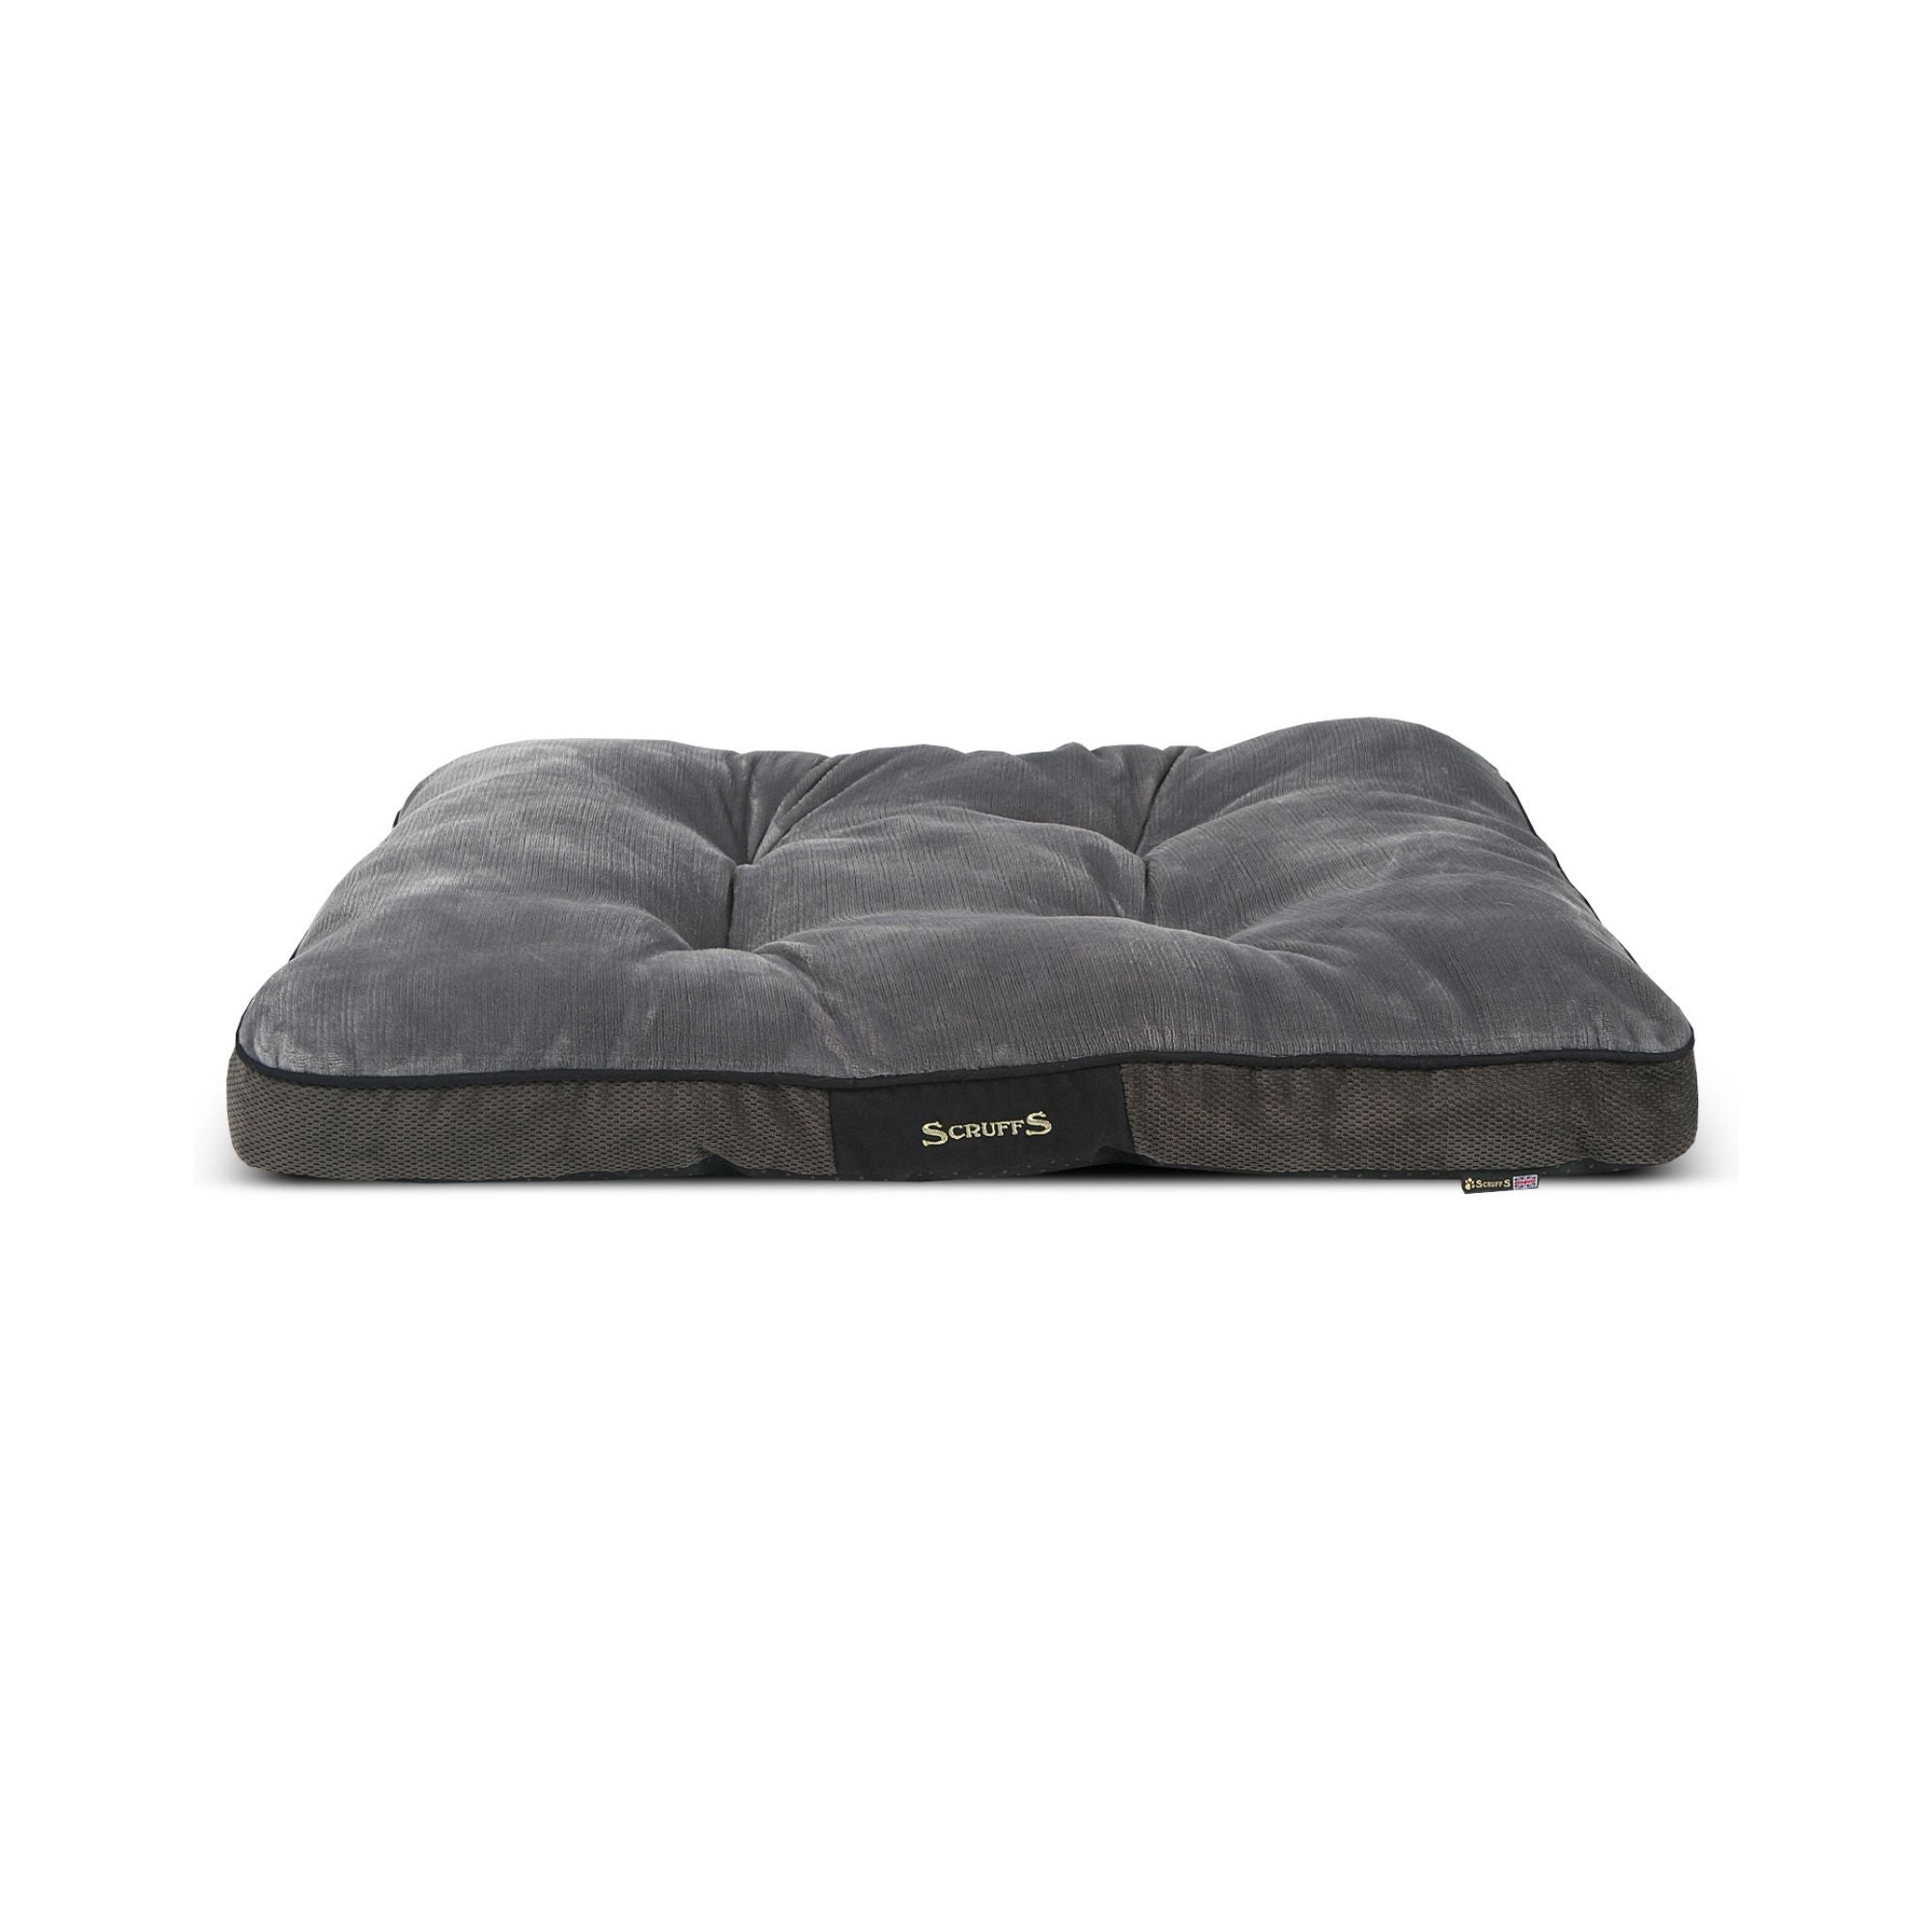 Scruffs Chester Mattress, Pet Dog Bed | Barks & Bunnies